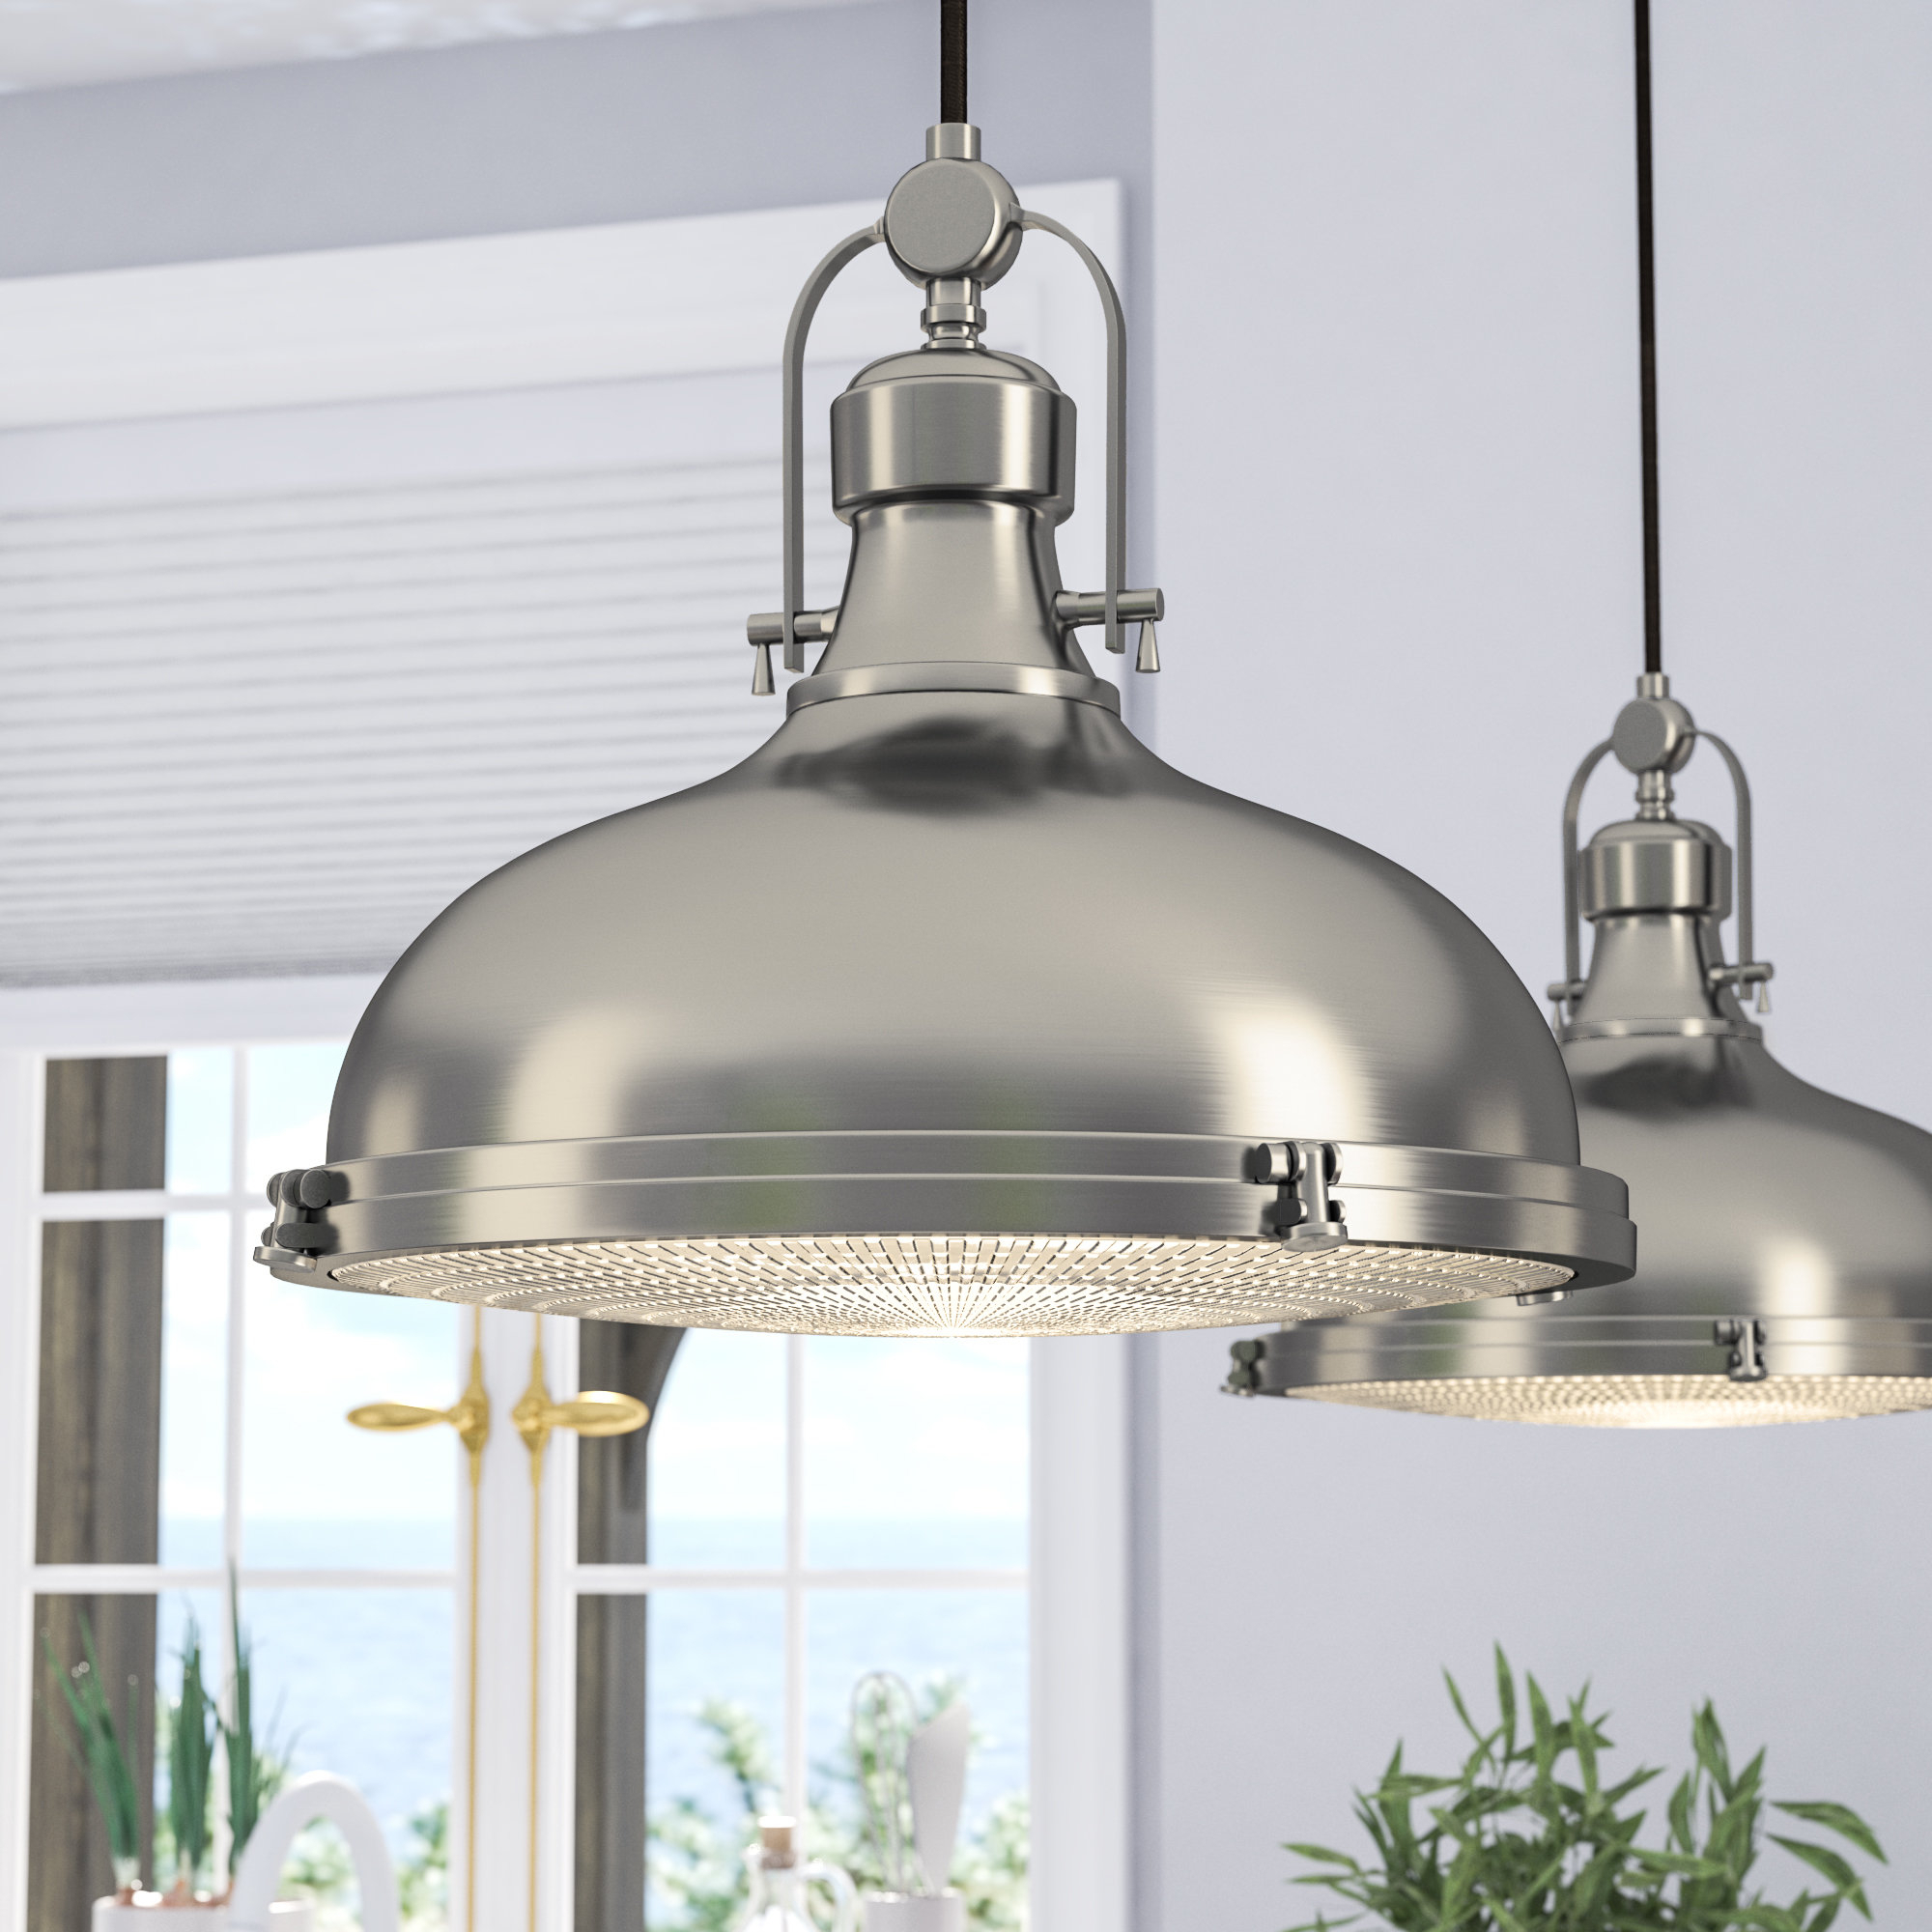 Dome Metal Pendant Lighting You'll Love In 2019 | Wayfair With Regard To Mueller 1 Light Single Dome Pendants (Gallery 23 of 30)